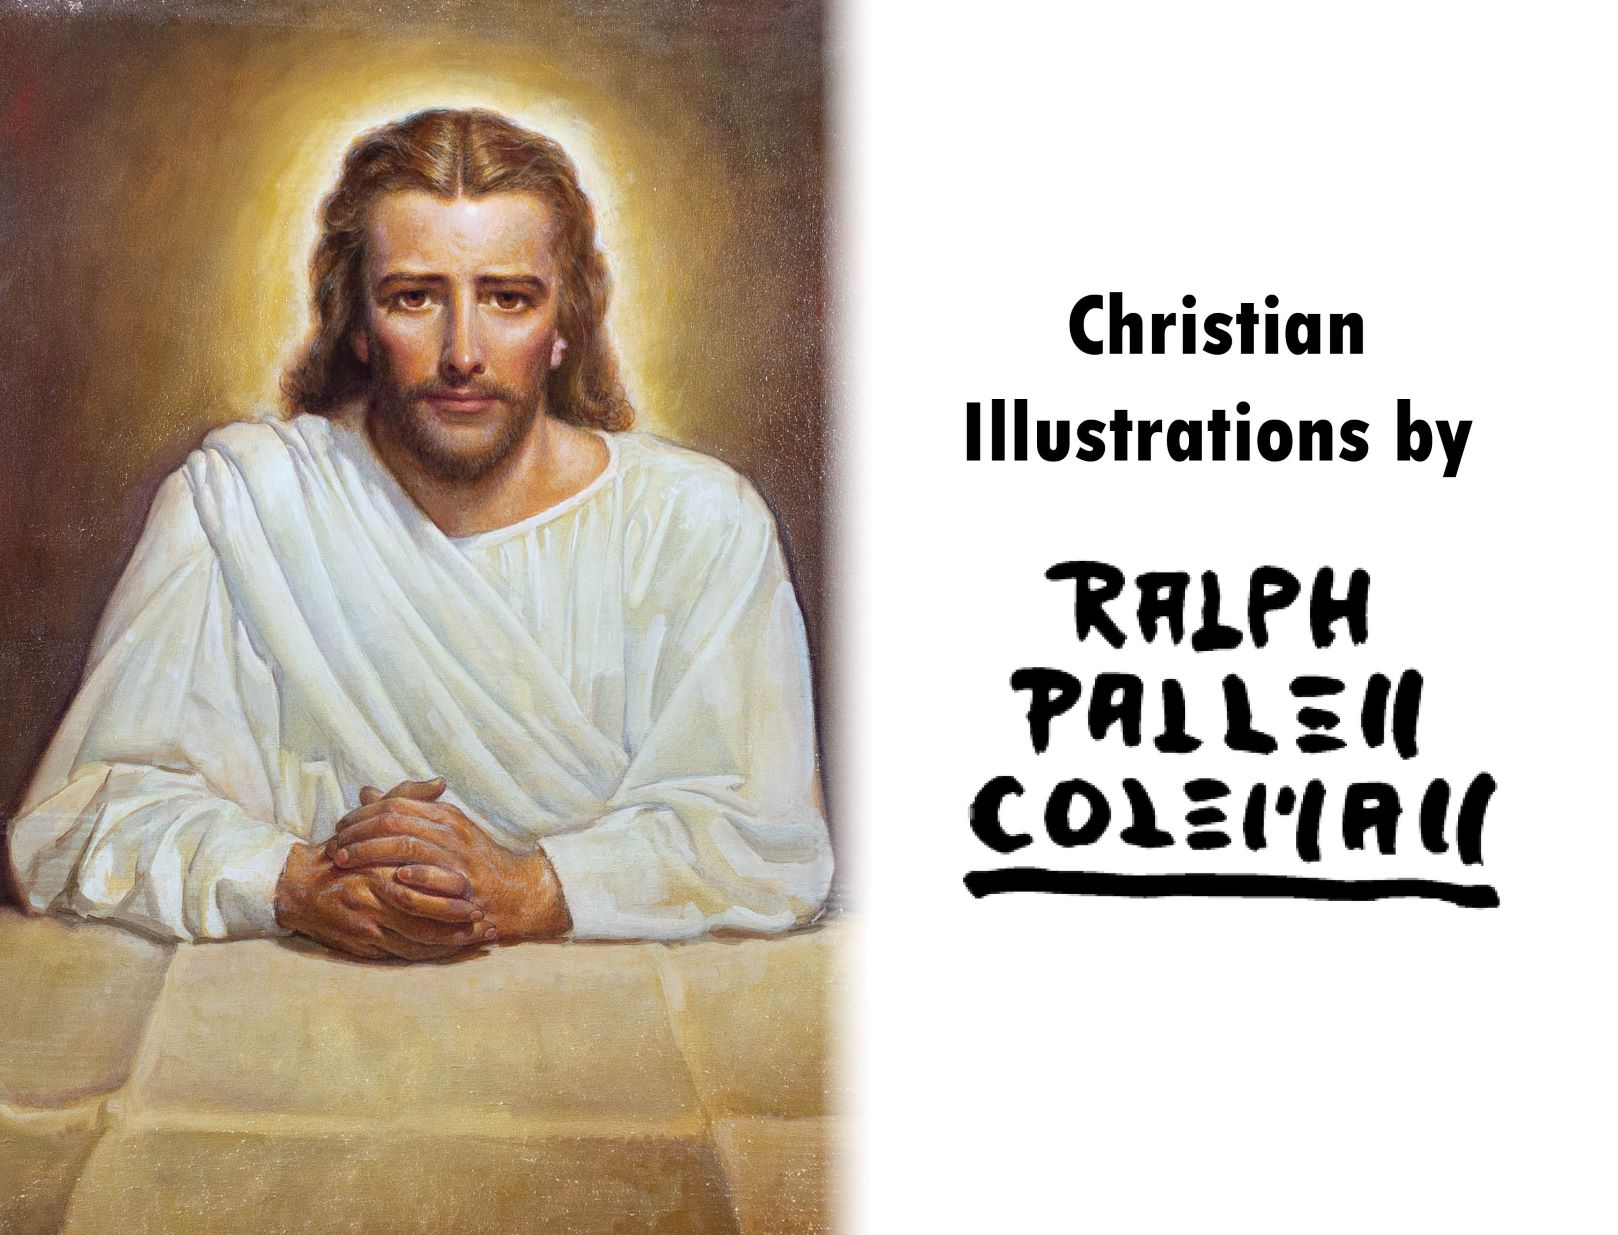 Religious art book with Christian Illustrations and artwork by Ralph Pallen Coleman